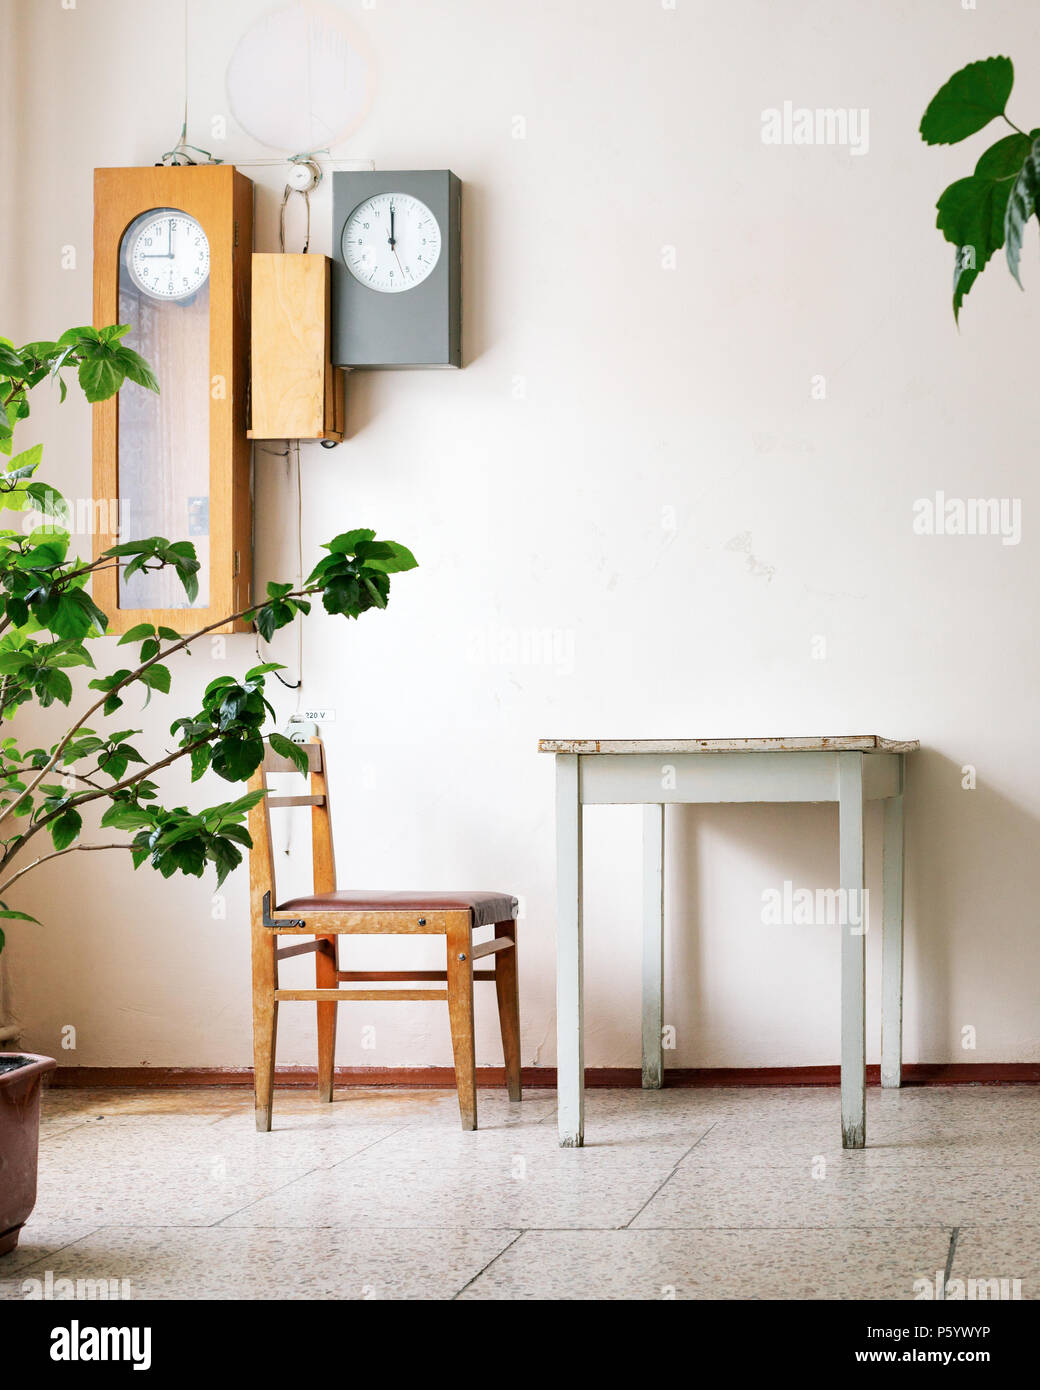 Creative wooden furniture Patio Retro Interior With Old Wooden Furniture And Vintage Wall Clock Creative Background With Copy Space Time Concept Diy Network Retro Interior With Old Wooden Furniture And Vintage Wall Clock